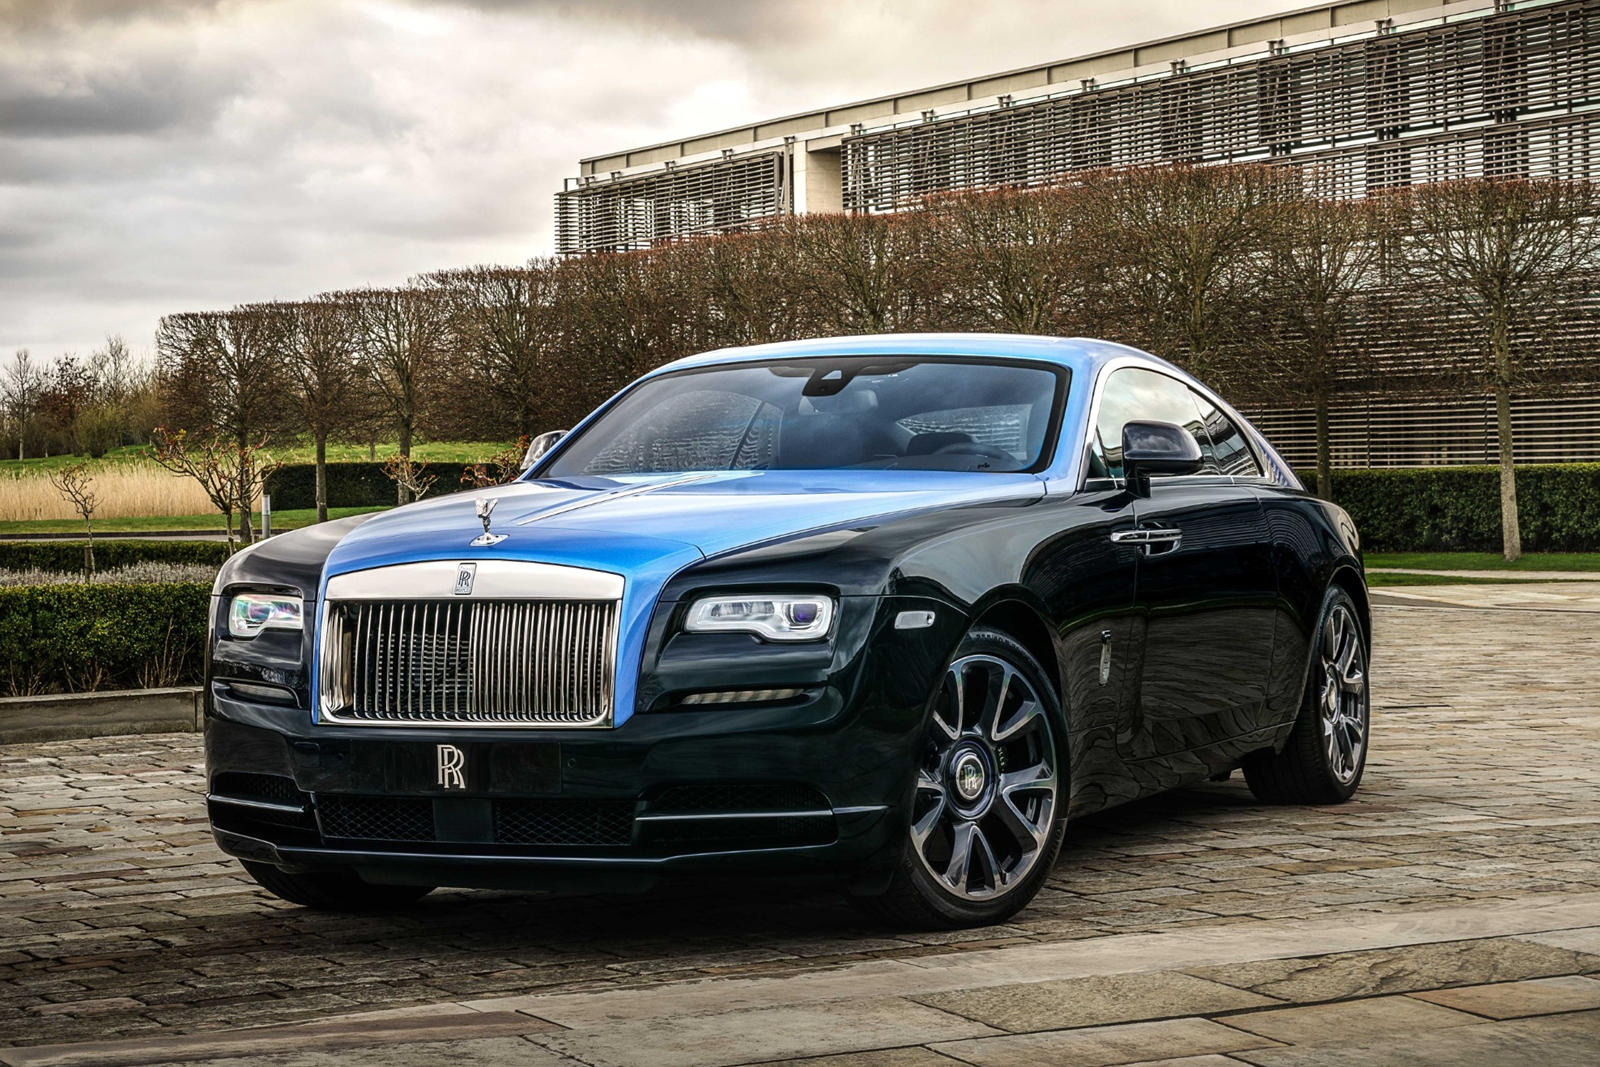 2018 Rolls Royce Wraith Review Trims Specs Price New Interior Features Exterior Design And Specifications Carbuzz